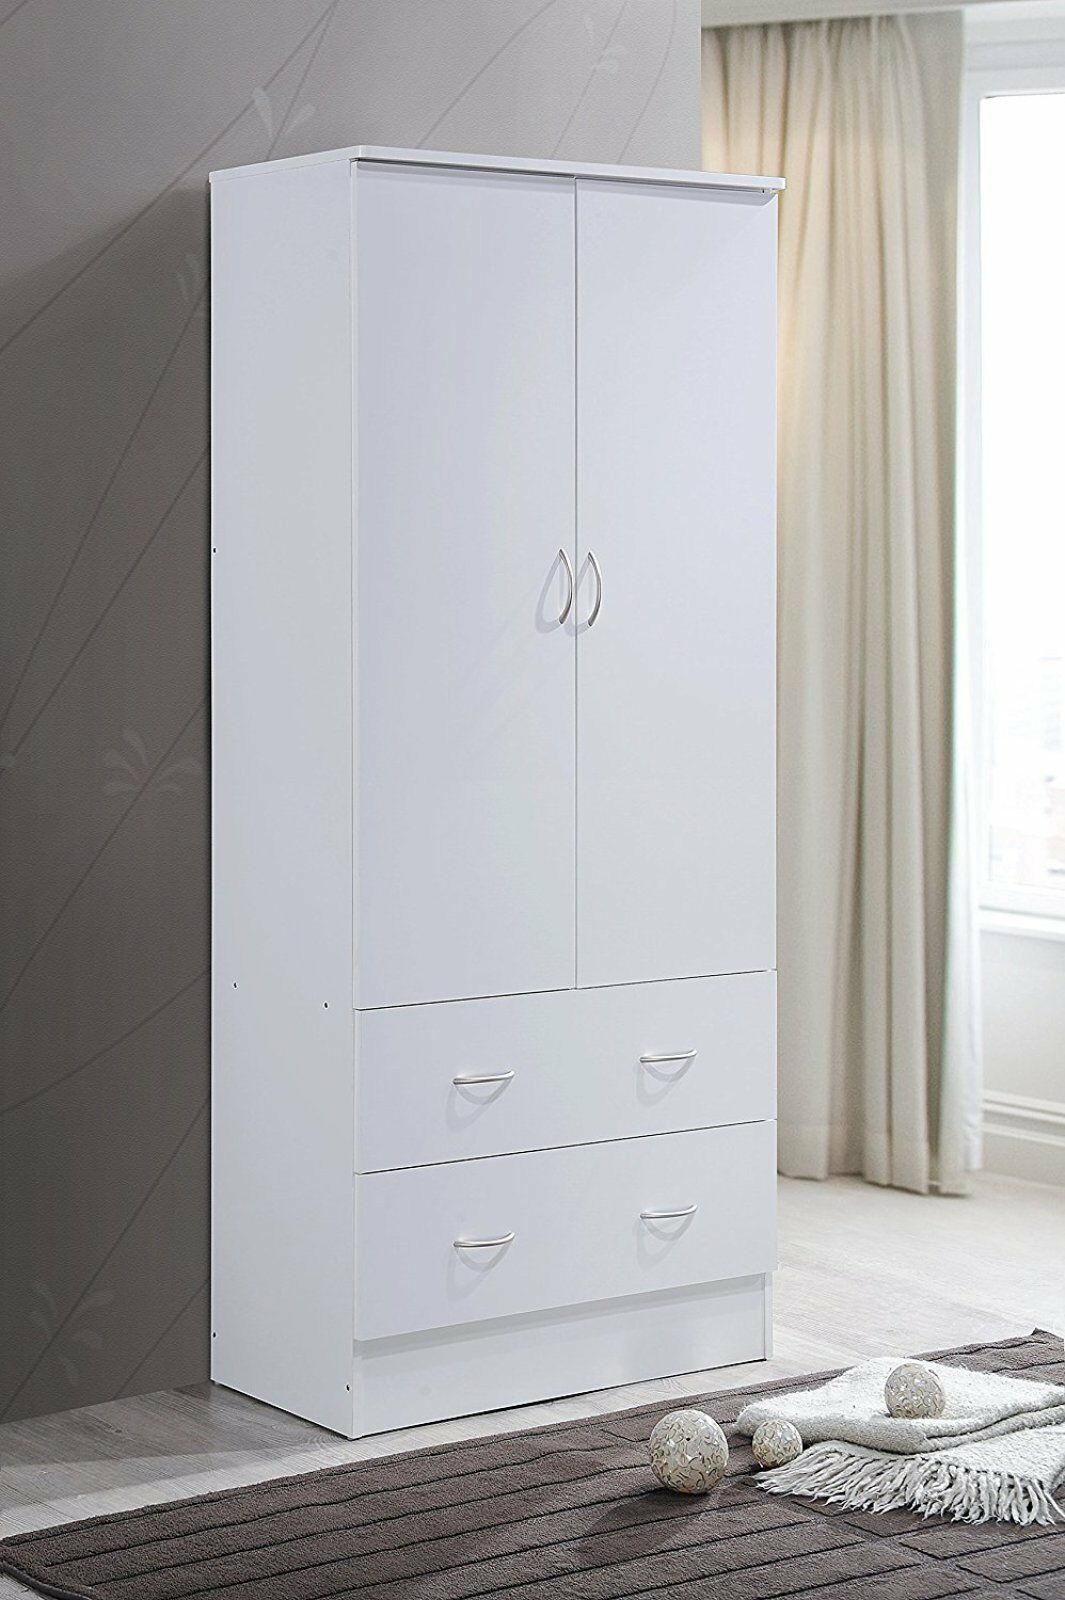 Tall Armoire Wardrobe Closet Cabinet Clothes Storage Organizer Bedroom  Furniture